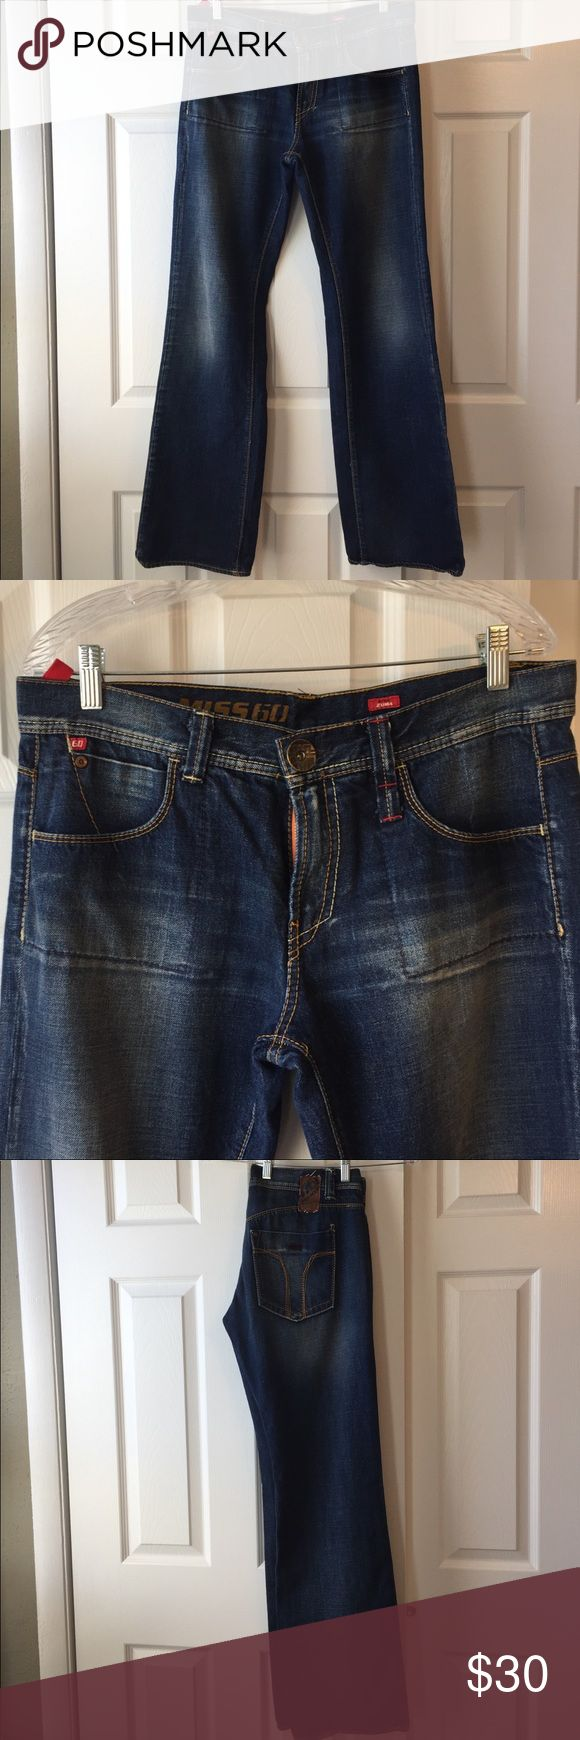 Miss Sixty Zuma Style Jeans, Size 32 In great condition. Zuma style. 100% cotton. Straight leg. True to size Miss Sixty Jeans